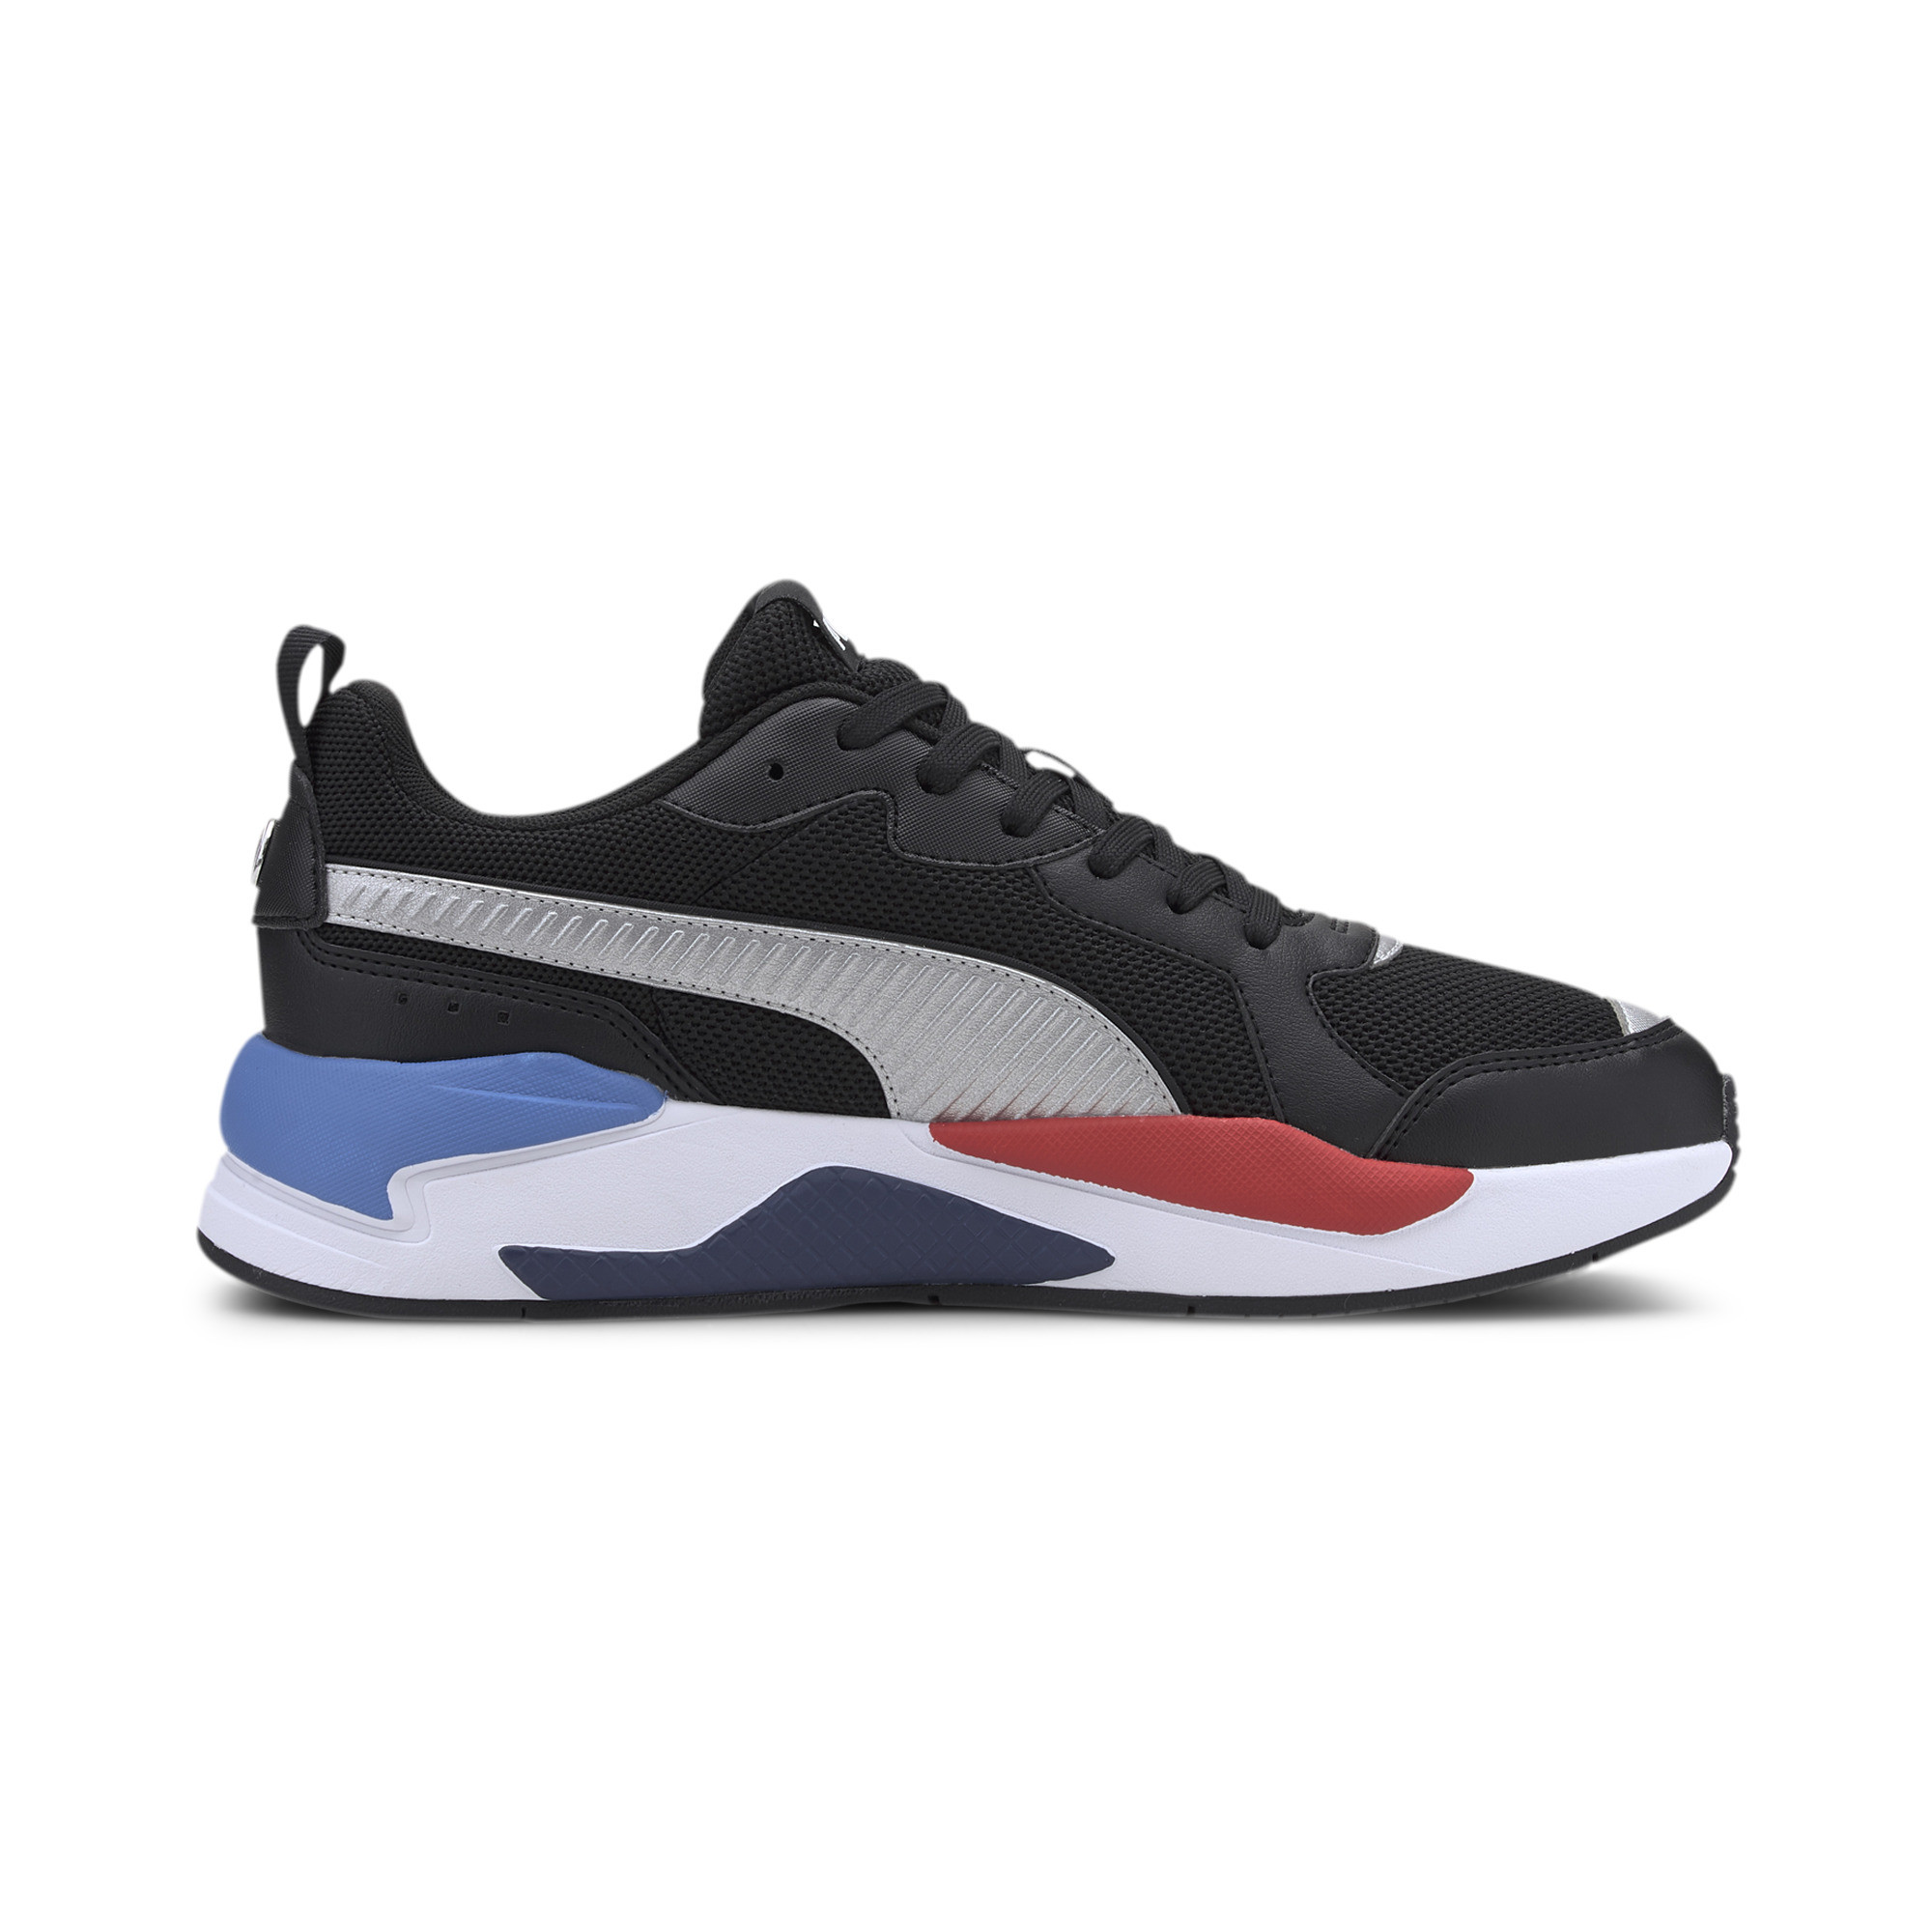 PUMA-Men-039-s-BMW-M-Motorsport-X-RAY-Sneakers thumbnail 7